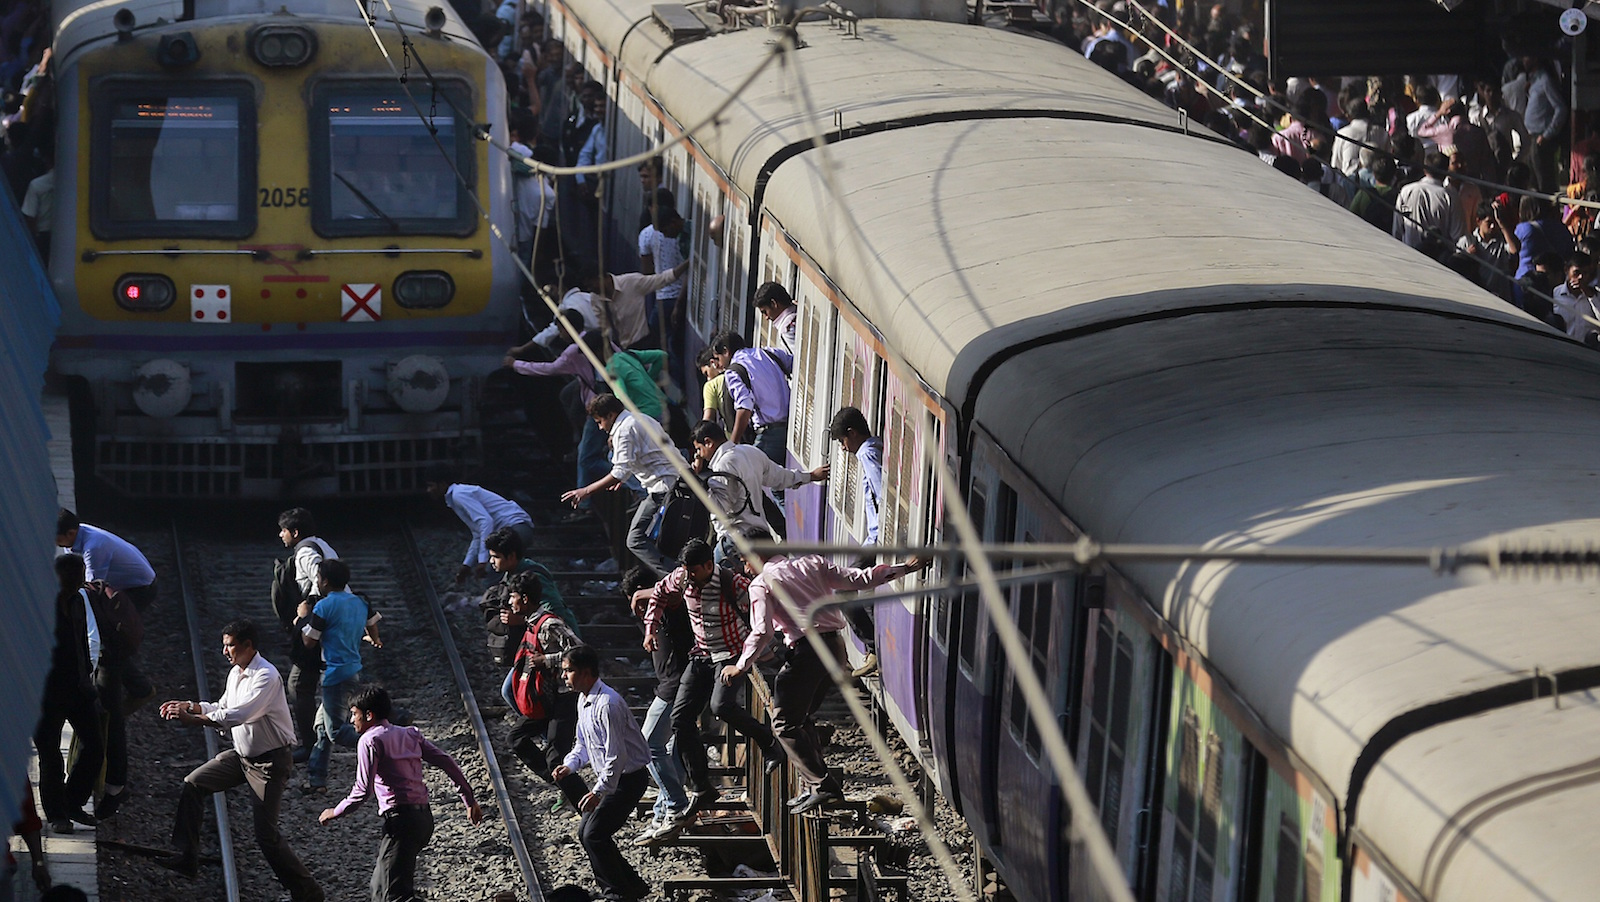 Commuters cross railway tracks to catch trains at a railway station in Mumbai, India, Thursday, Feb. 26, 2015. Indian Railway minister Suresh Prabhu will unveil the Rail Budget 2015 on Thursday for one of the world's largest railways systems that serves more than 23 million passengers a day.